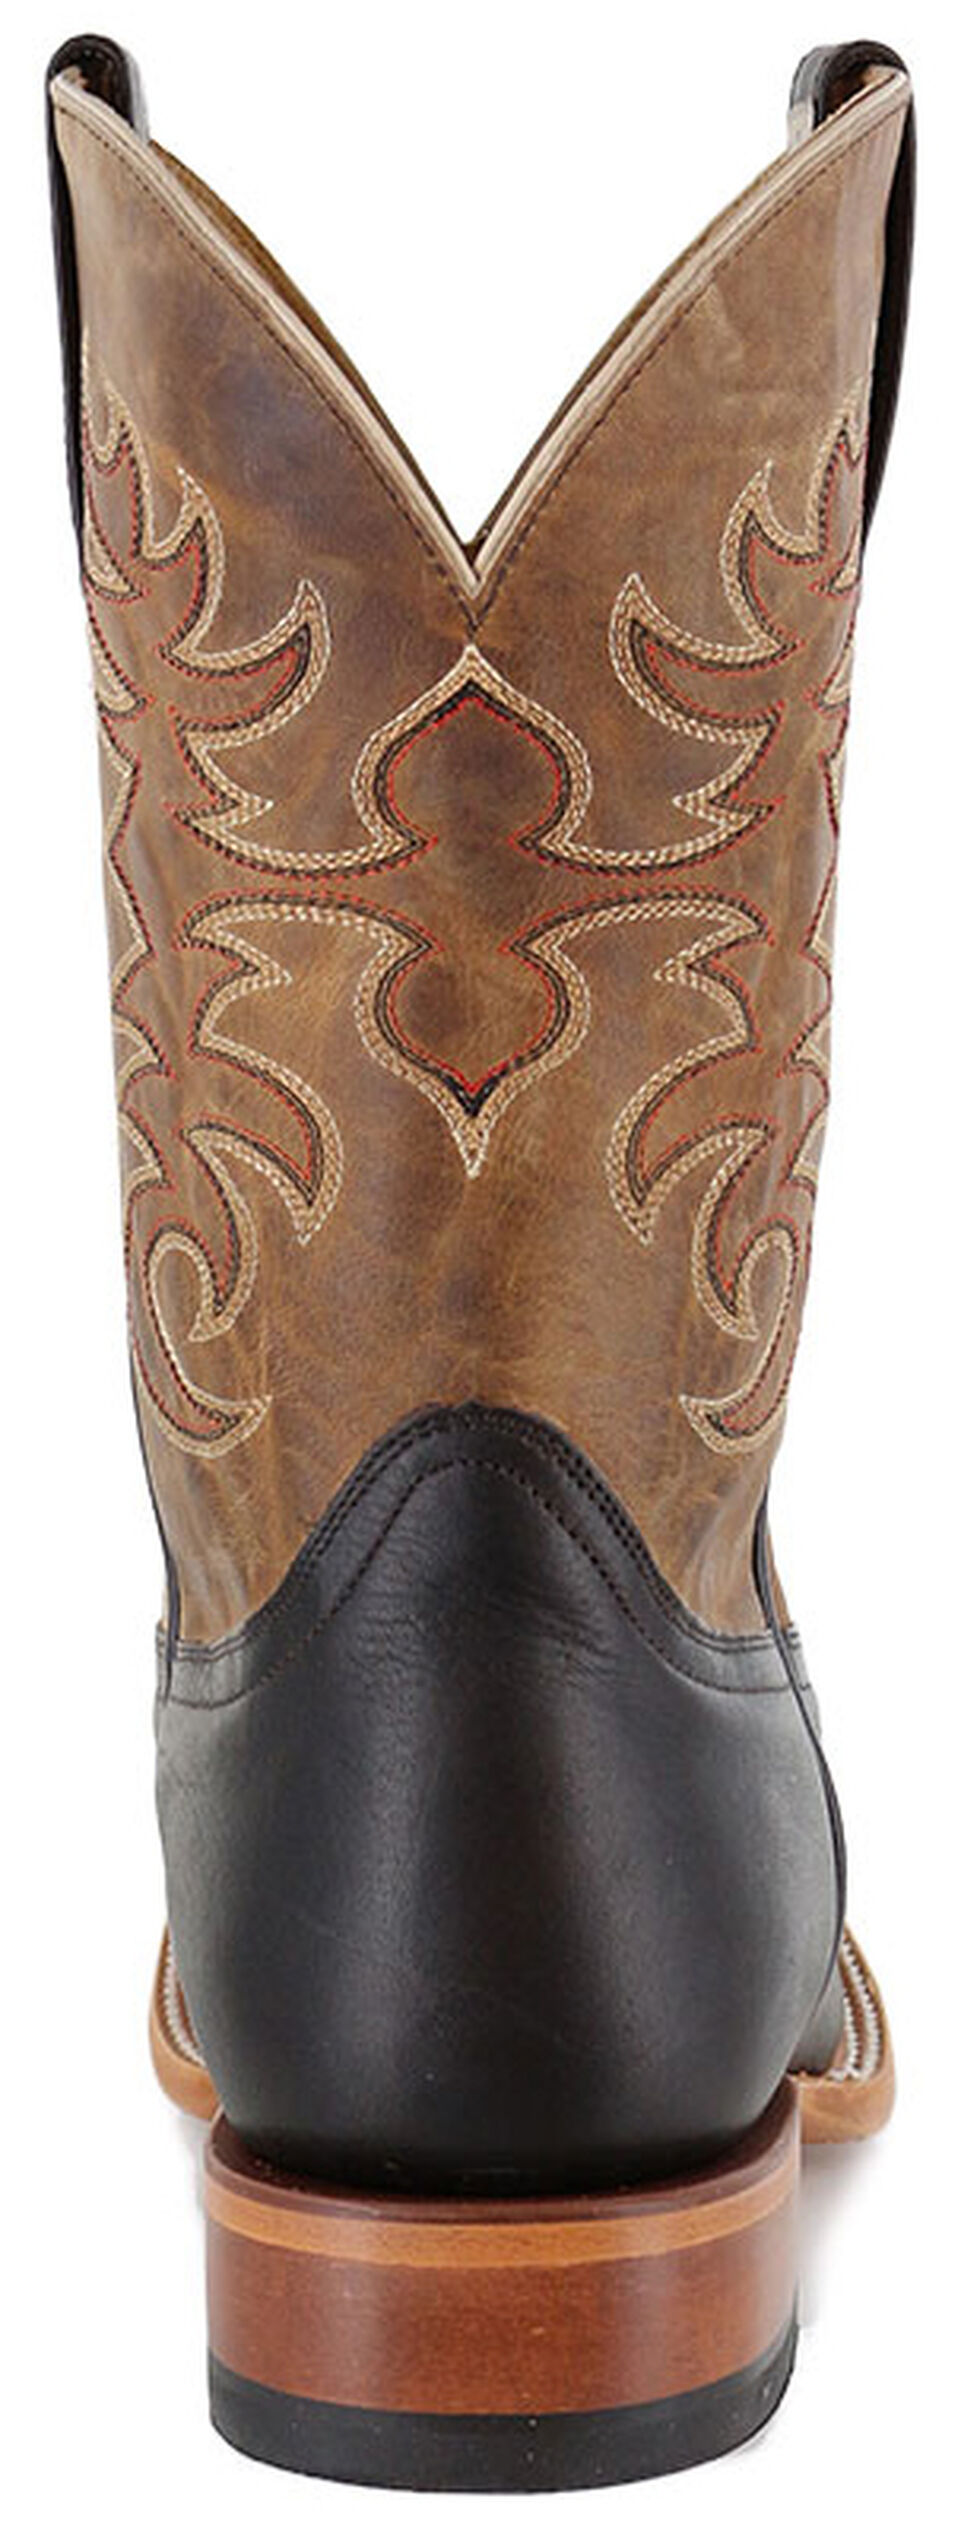 Cody James Men's Chocolate Xala Western Boots - Wide Square Toe, Brown, hi-res